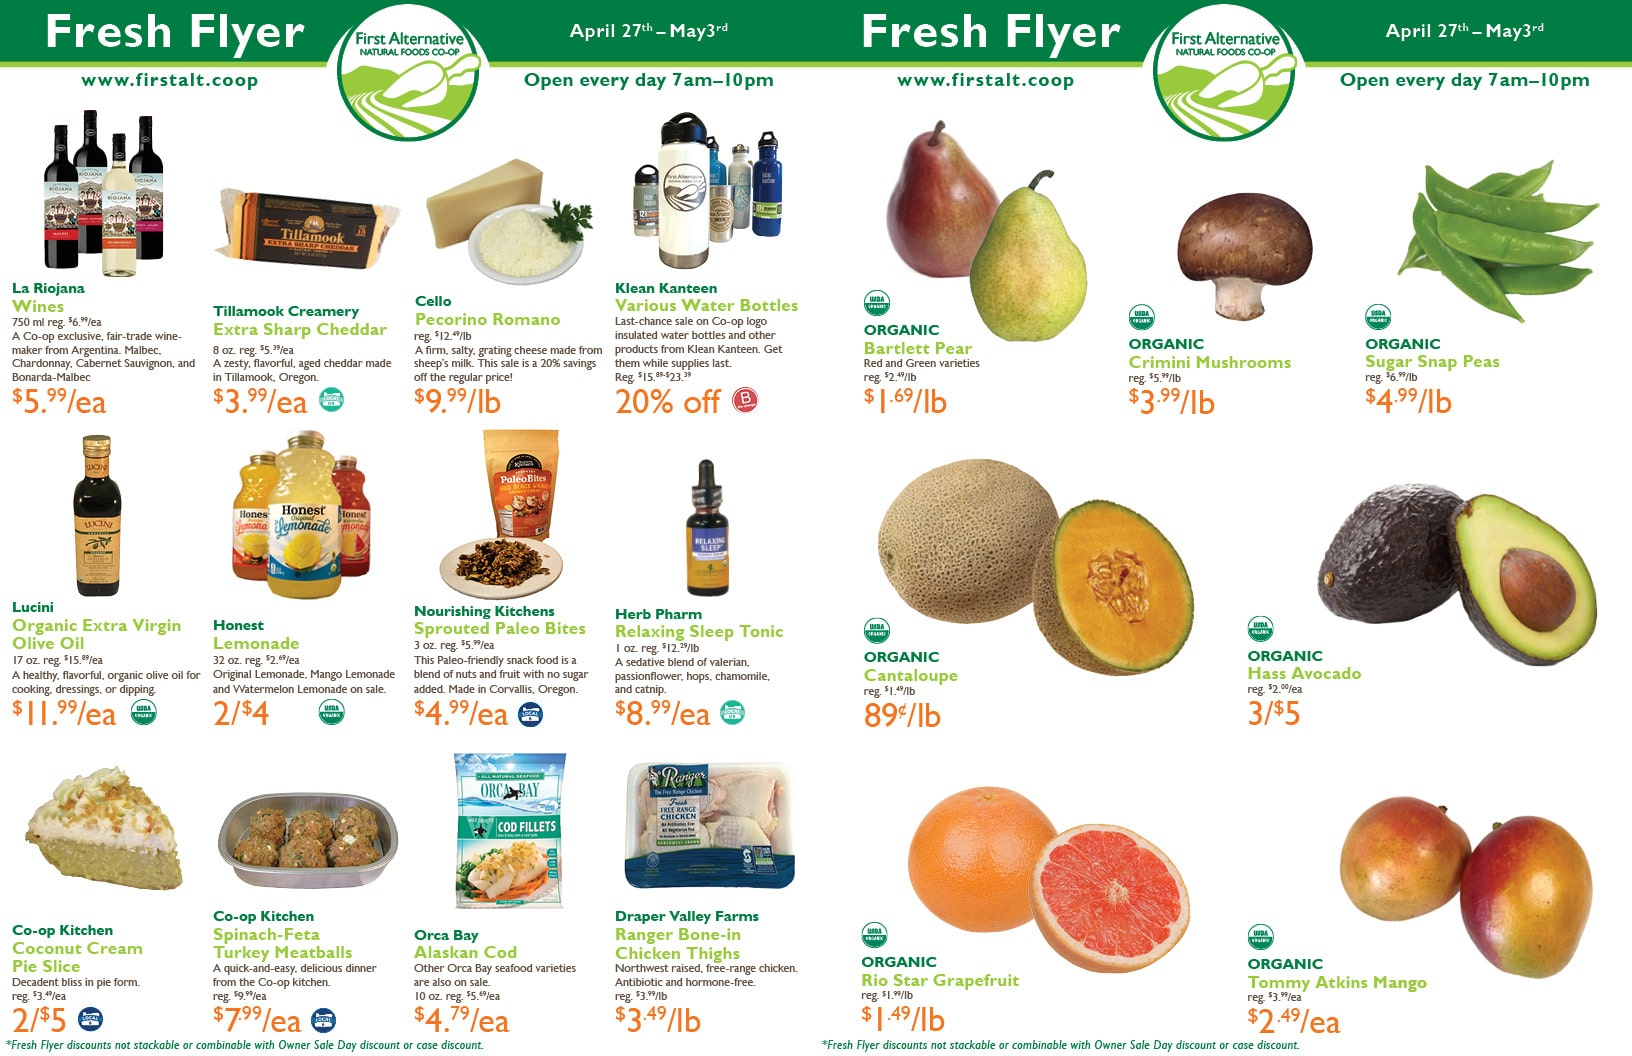 First Alternative Co-op Fresh Flyer April 27-May 3